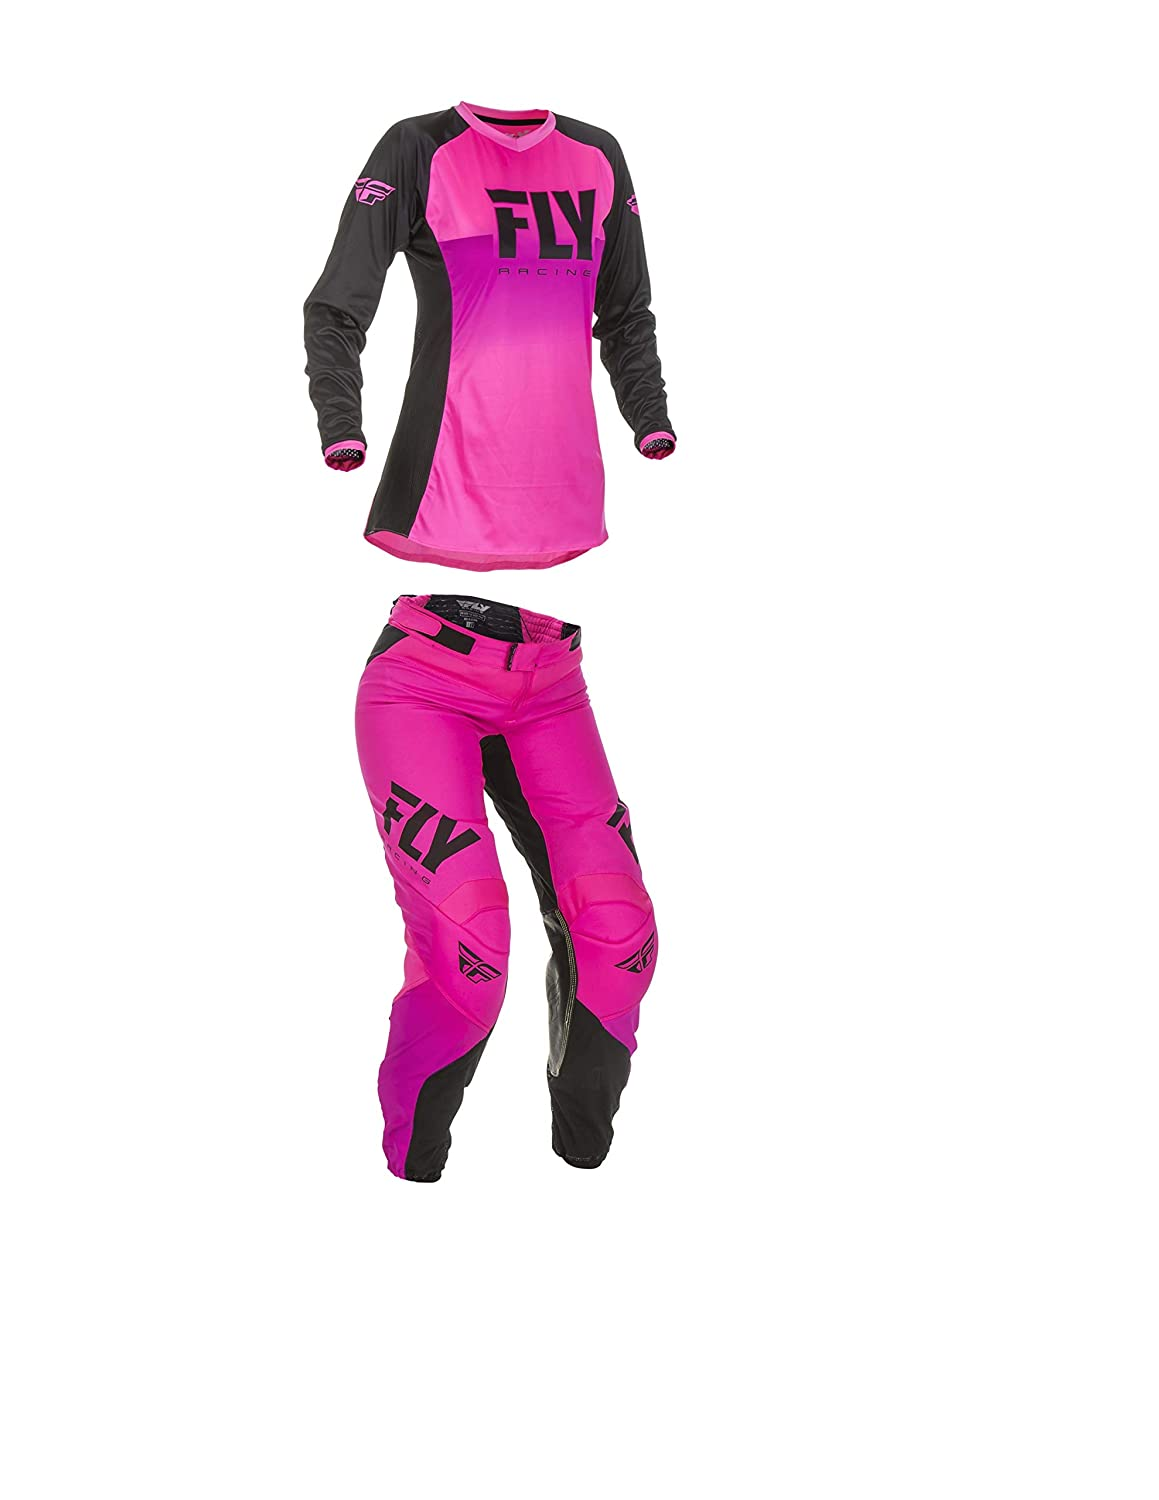 0//2 Pants//Small Jersey Fly Racing Lite Womens Motocross Race Pant//Jersey Package Neon Pink//Black